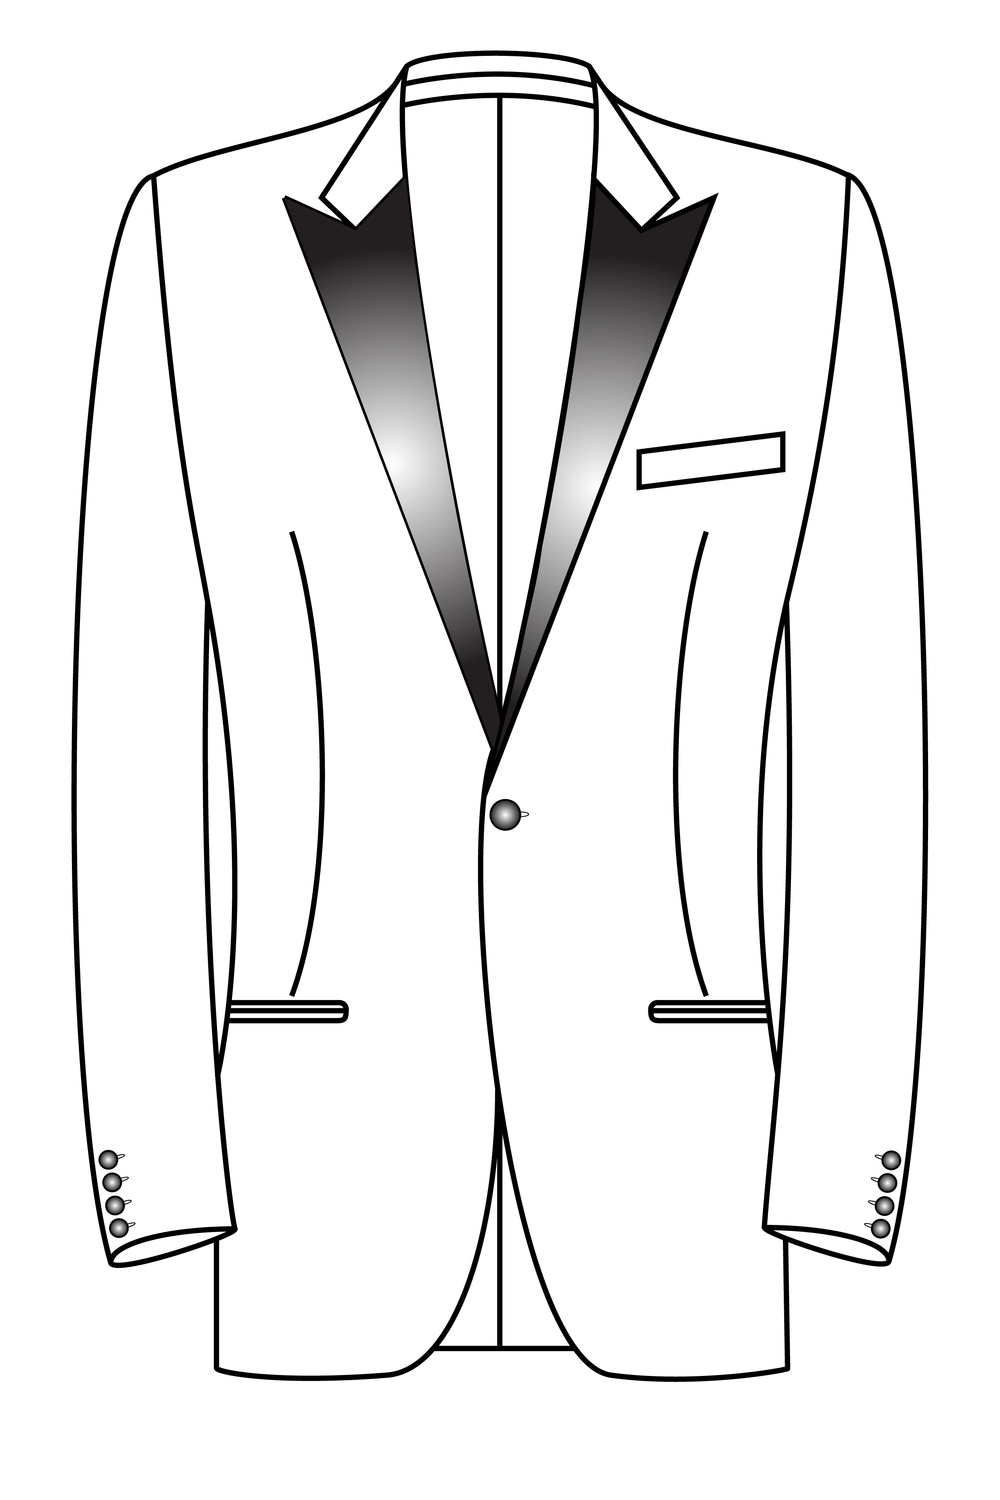 1 knoops peak lapel gepassepoileerde zakken smoking tuxedo dinner jacket.png